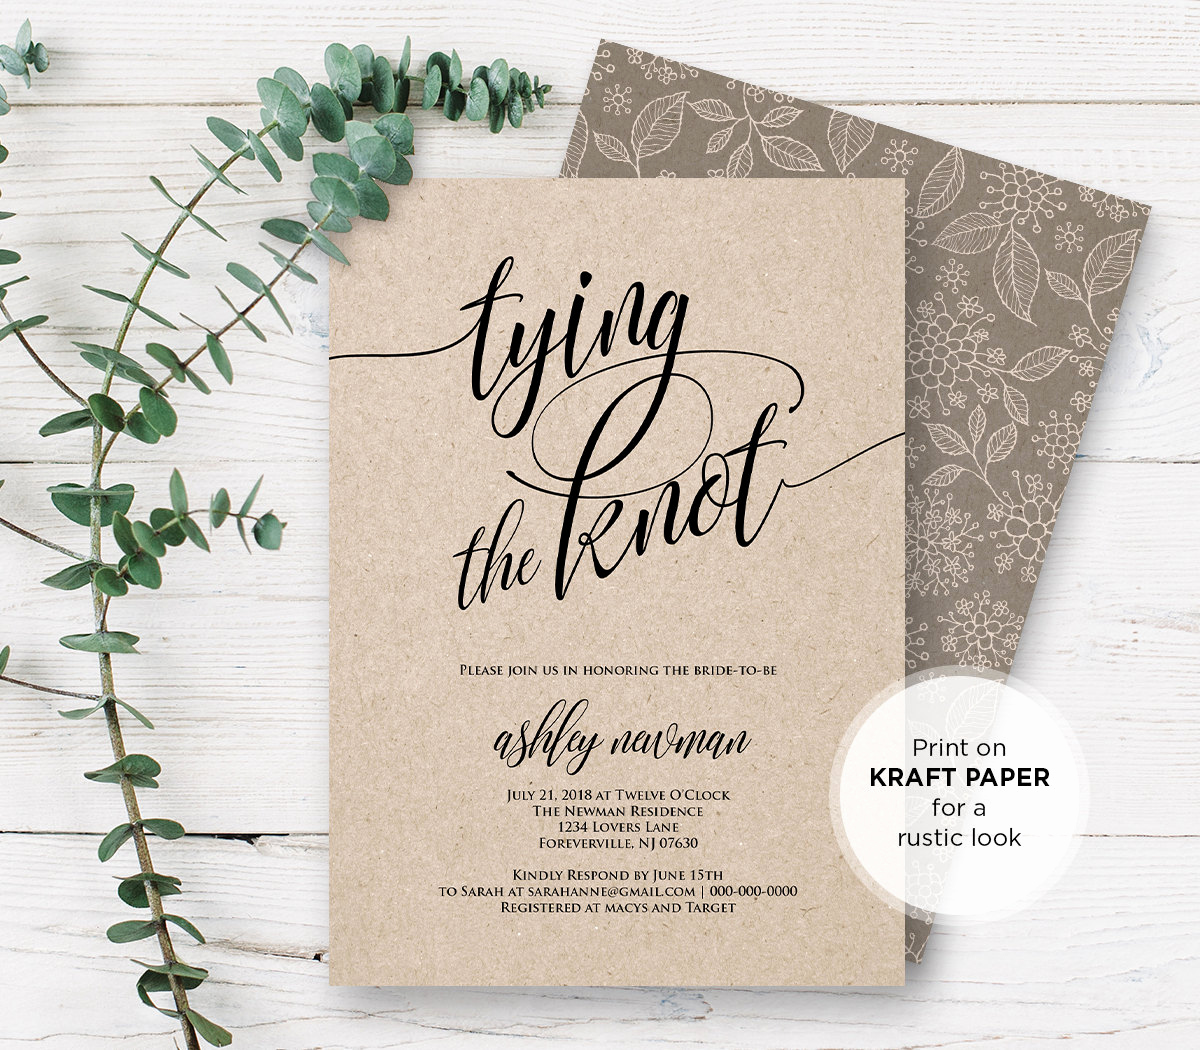 Free Bridal Shower Invitation Printables New Rustic Bridal Shower Invitation Printable Tying the Knot